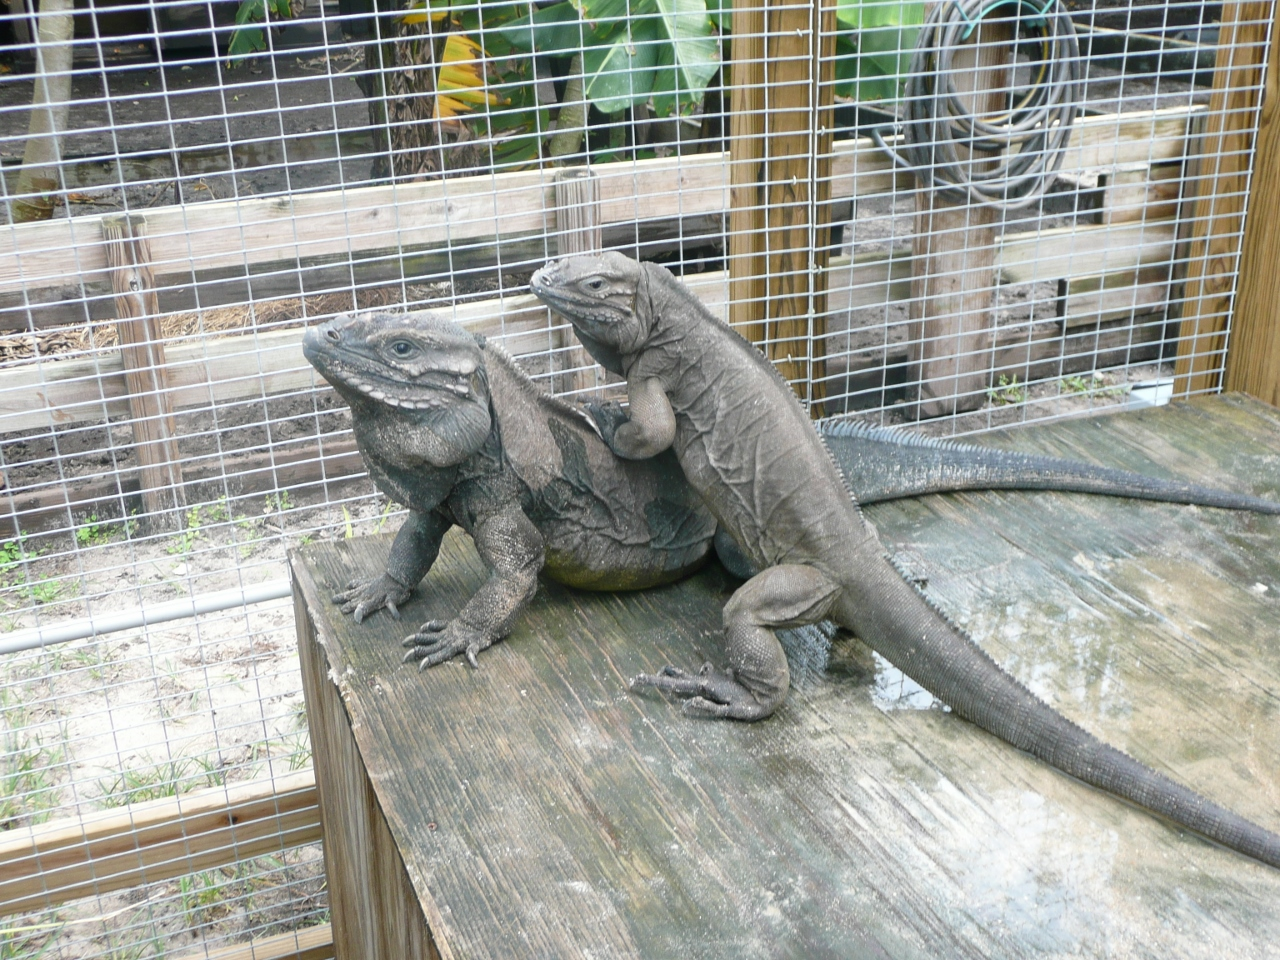 Rhino-Iguanas-Mating-Pair-Florida.jpg